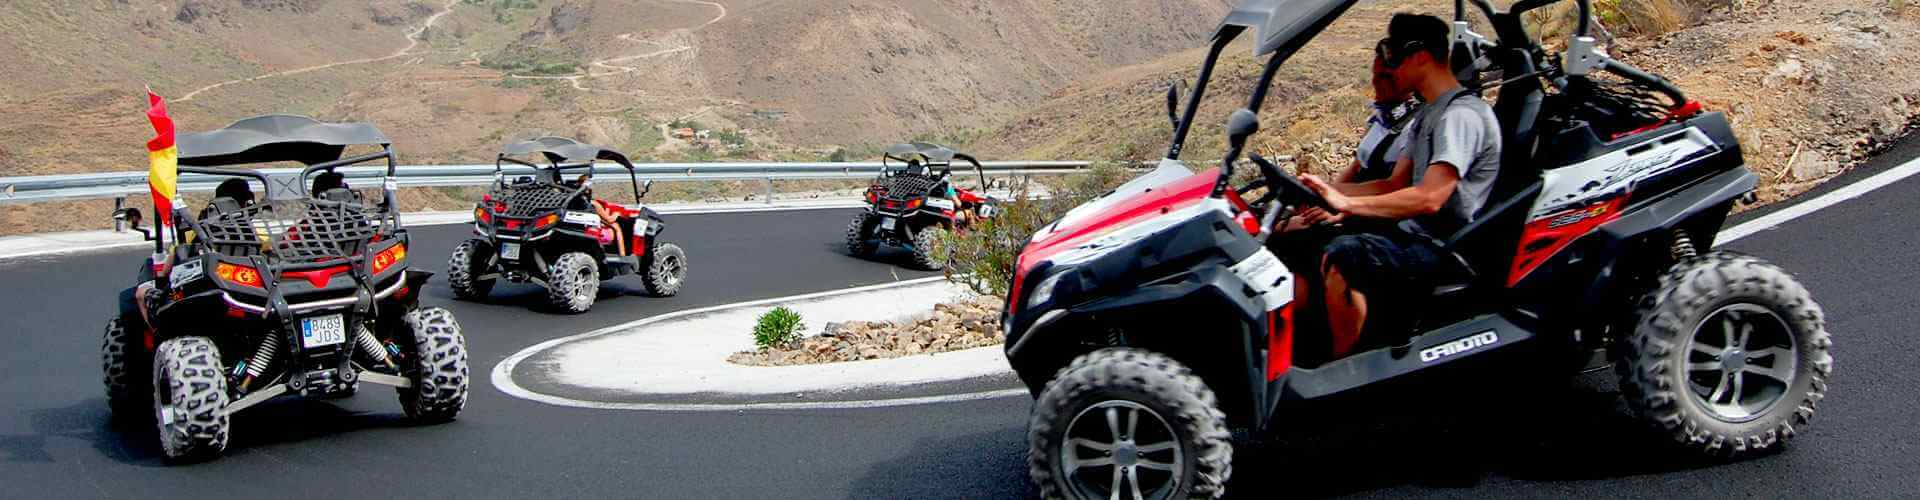 Gran Canaria pirate buggy tour gran canaria